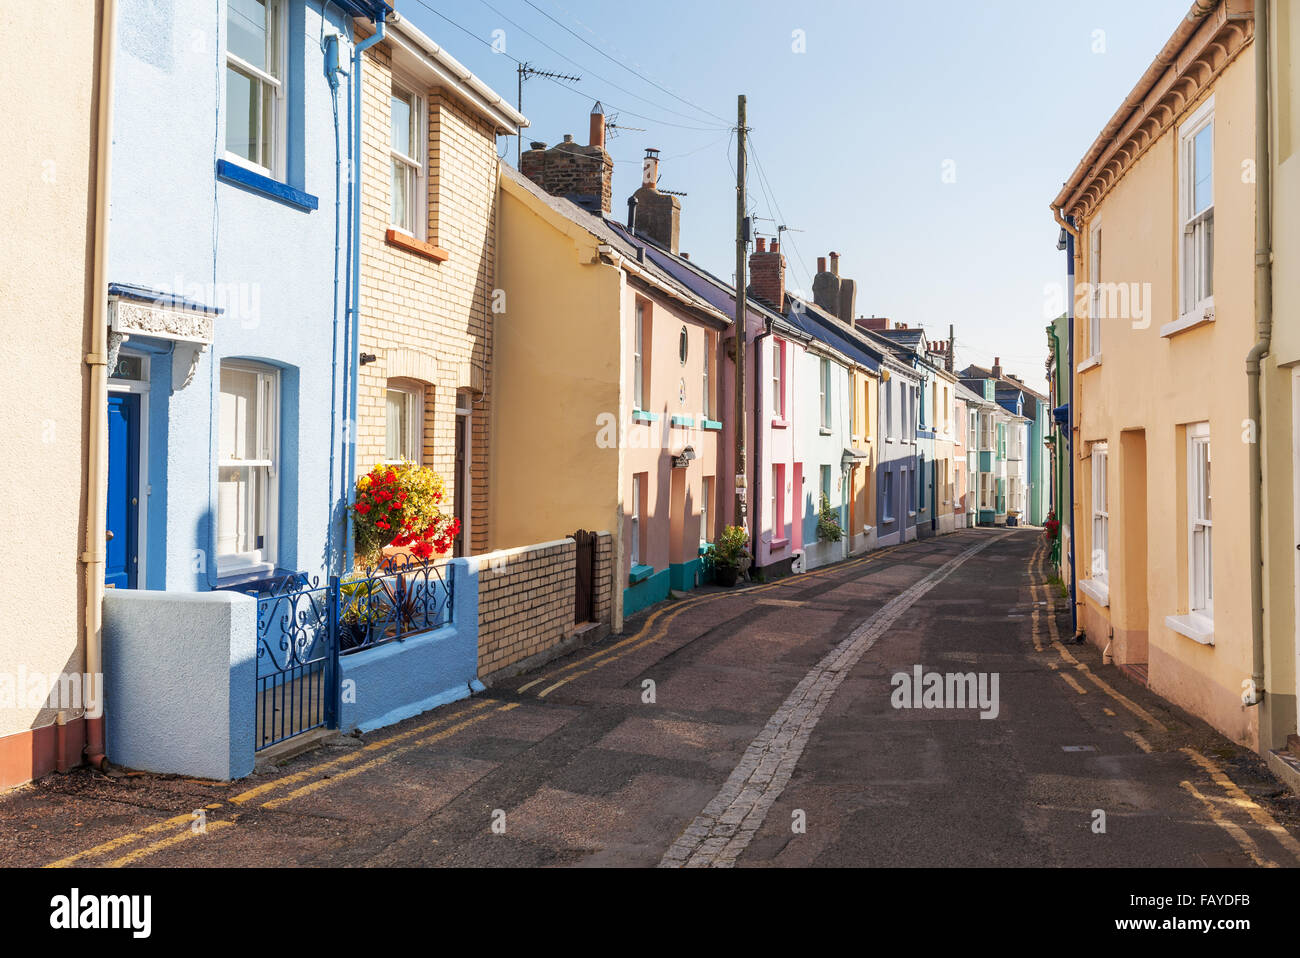 Multi-Coloured, Terraced Houses on a Street in Appledore, North Devon, UK - Stock Image